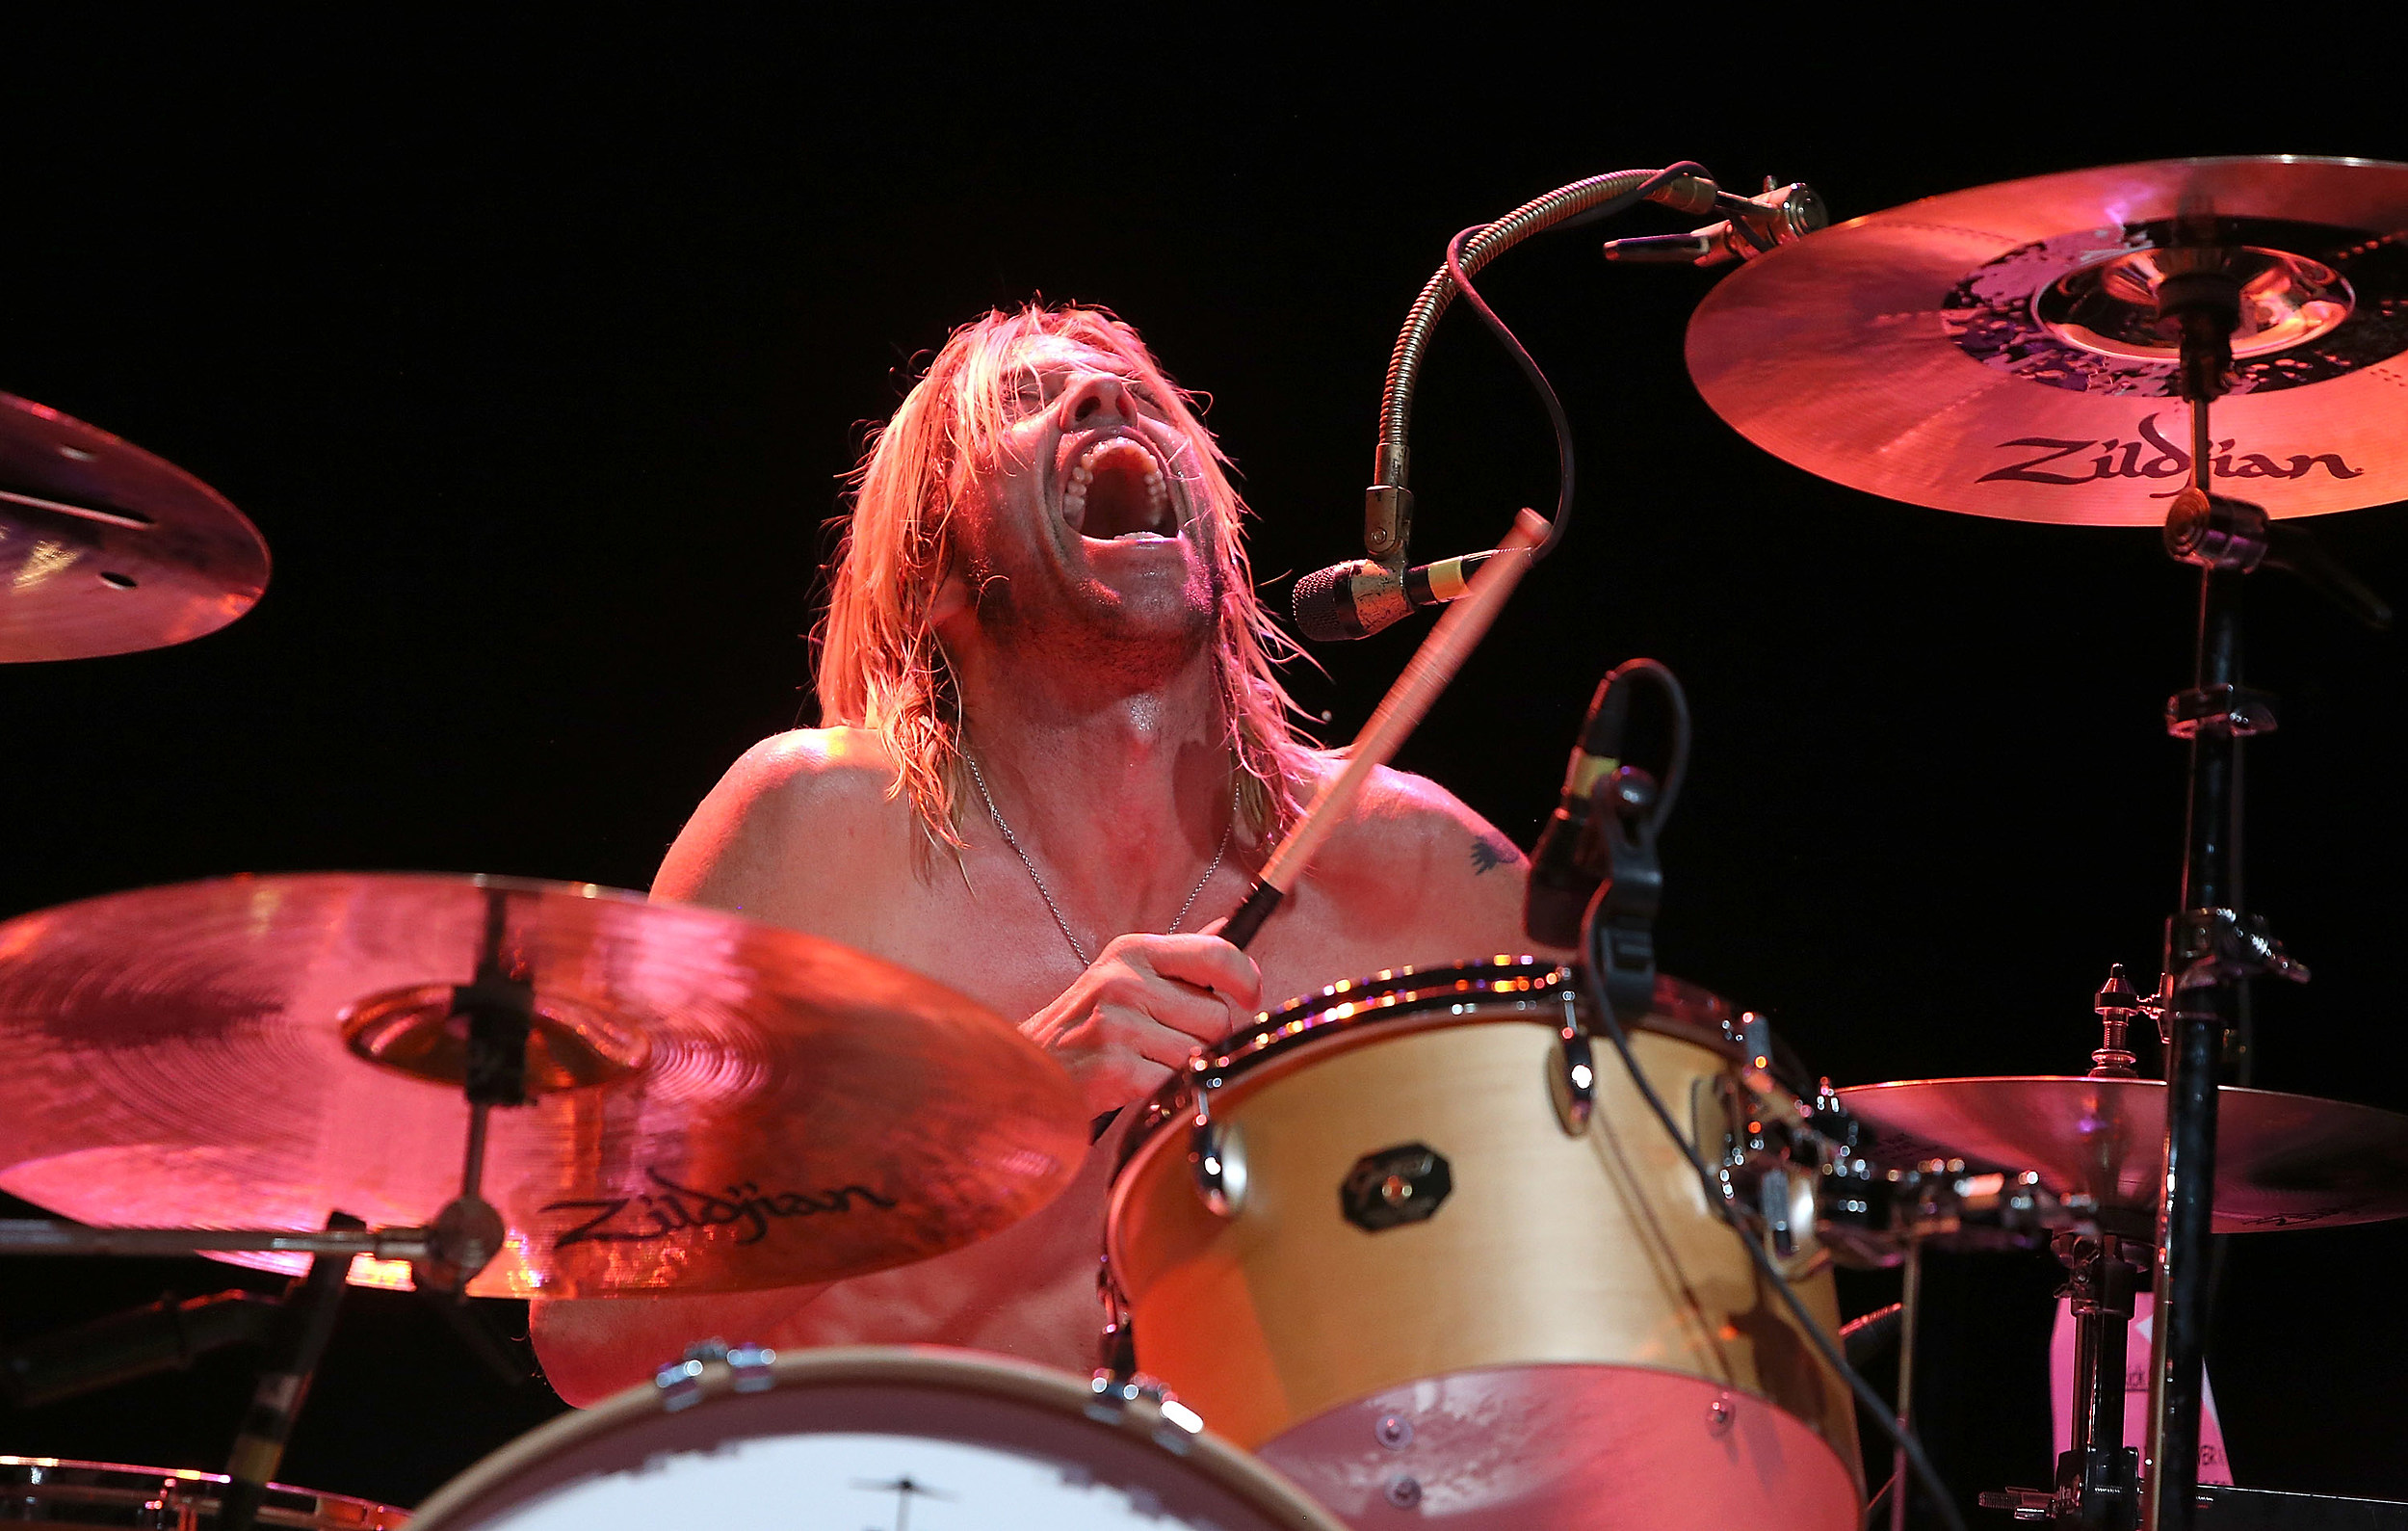 Taylor Hawkins of Foo Fighters forms new group